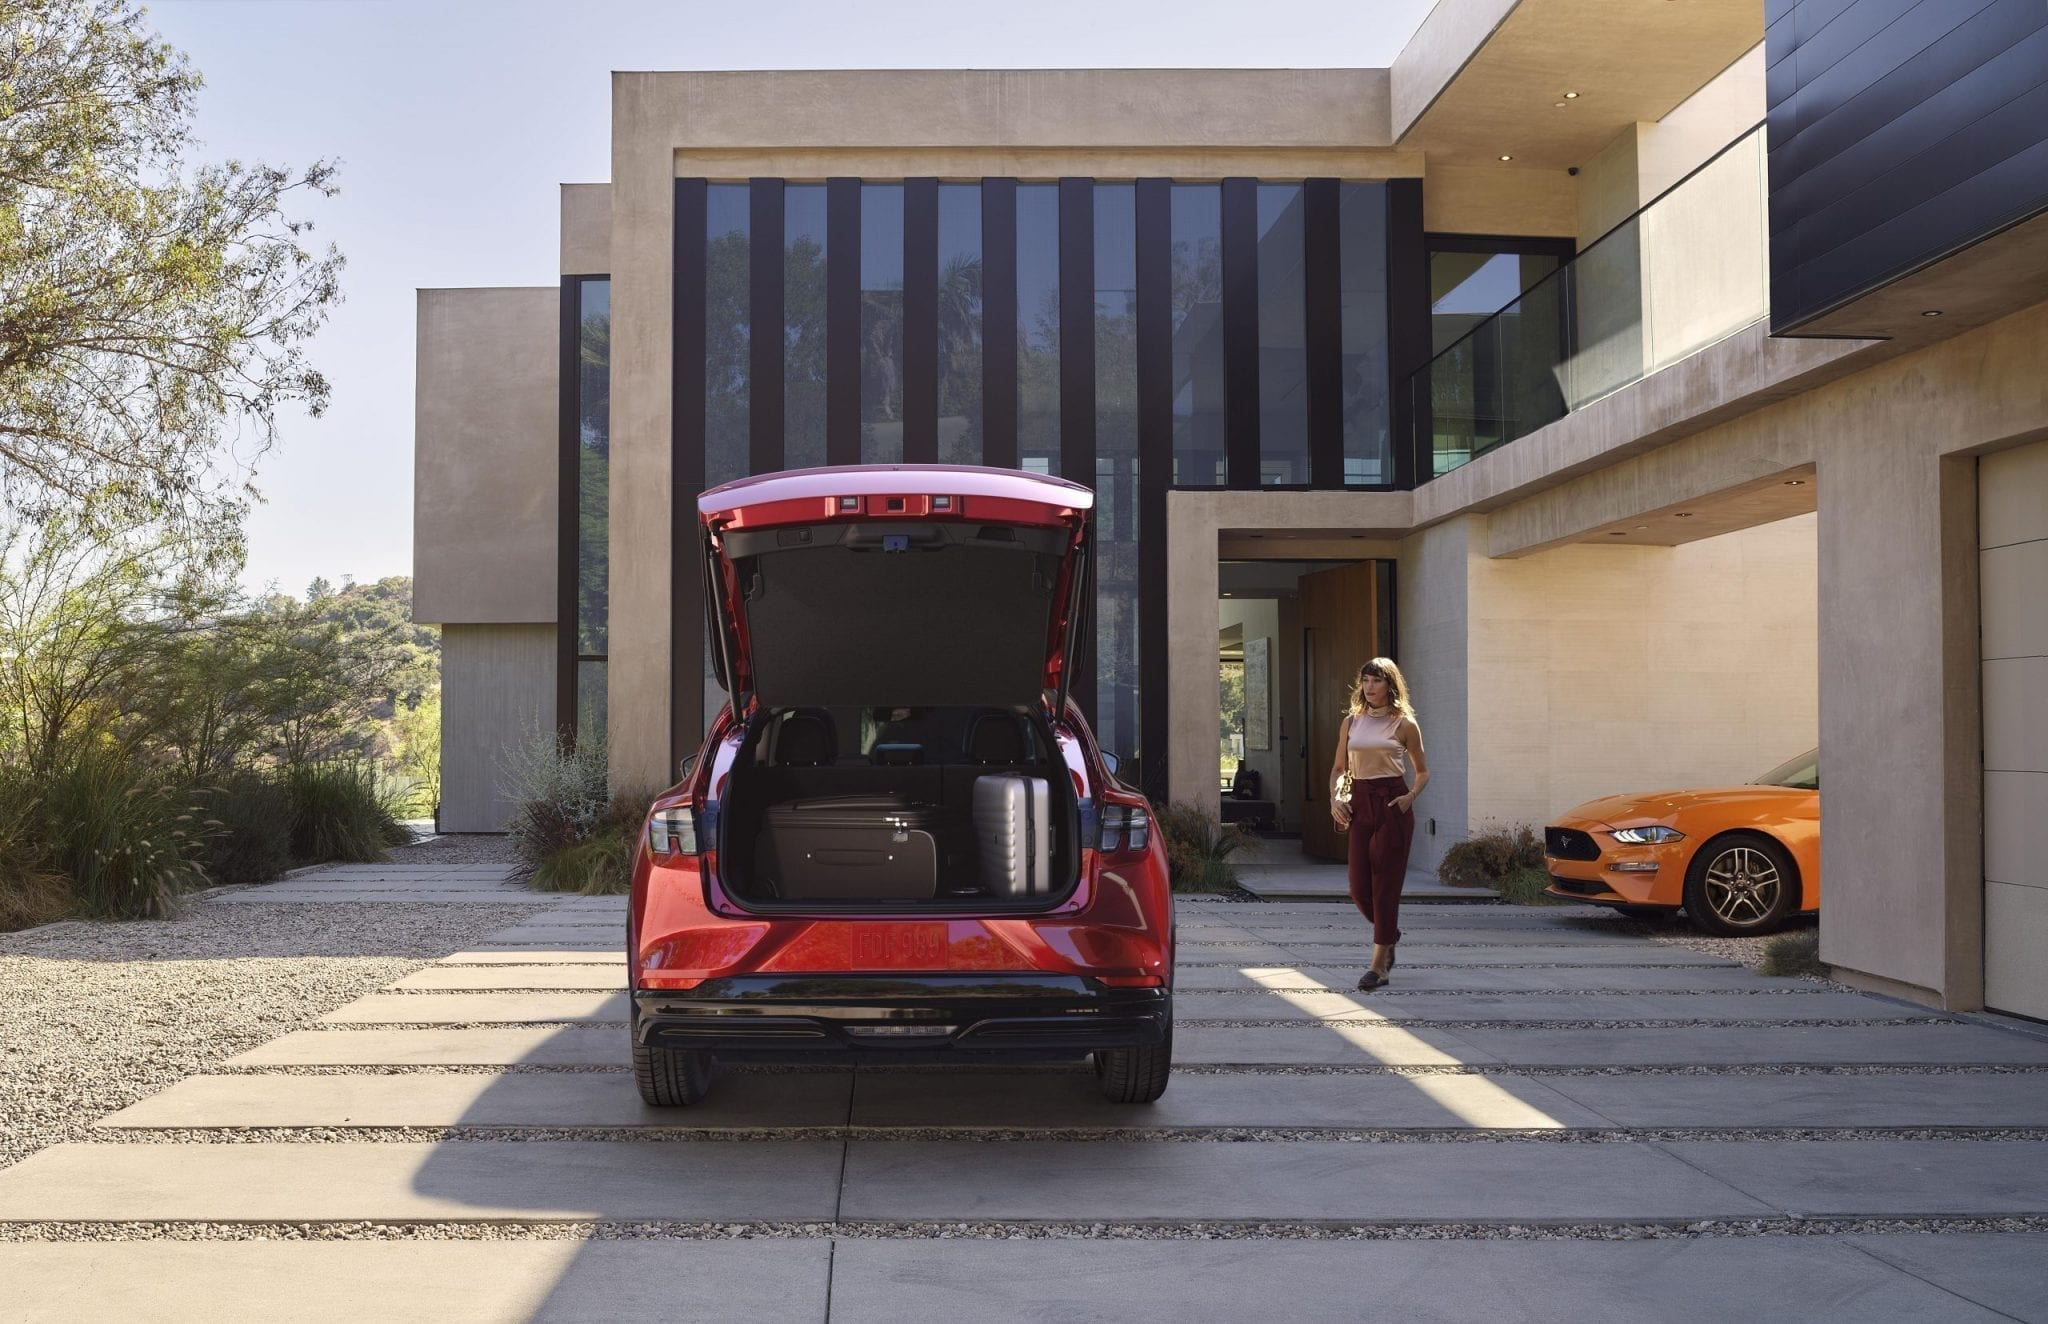 In addition to the exterior front trunk, the rear trunk is outfitted with 29 cubic feet of space. With the back seats down, the Mustang Mach-E boasts 59.6 cubic feet of space – more than enough room for luggage, camping gear or whatever else you may want to move around.